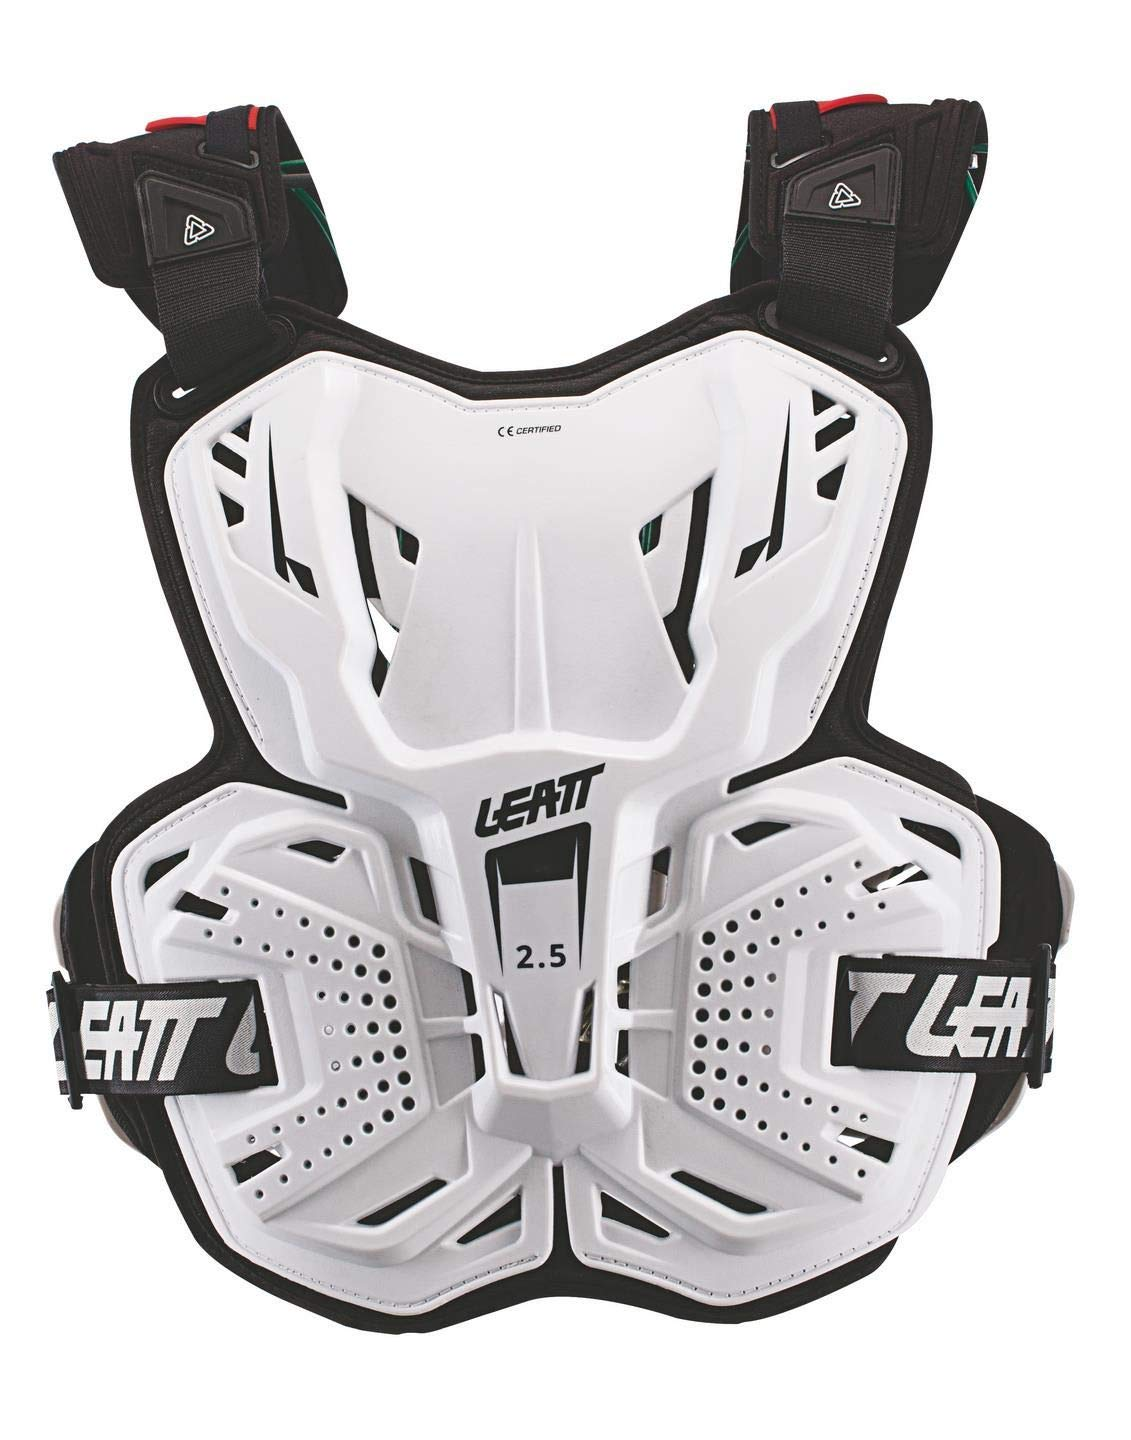 Leatt Unisex-Adult Chest Protector (White,Adult)